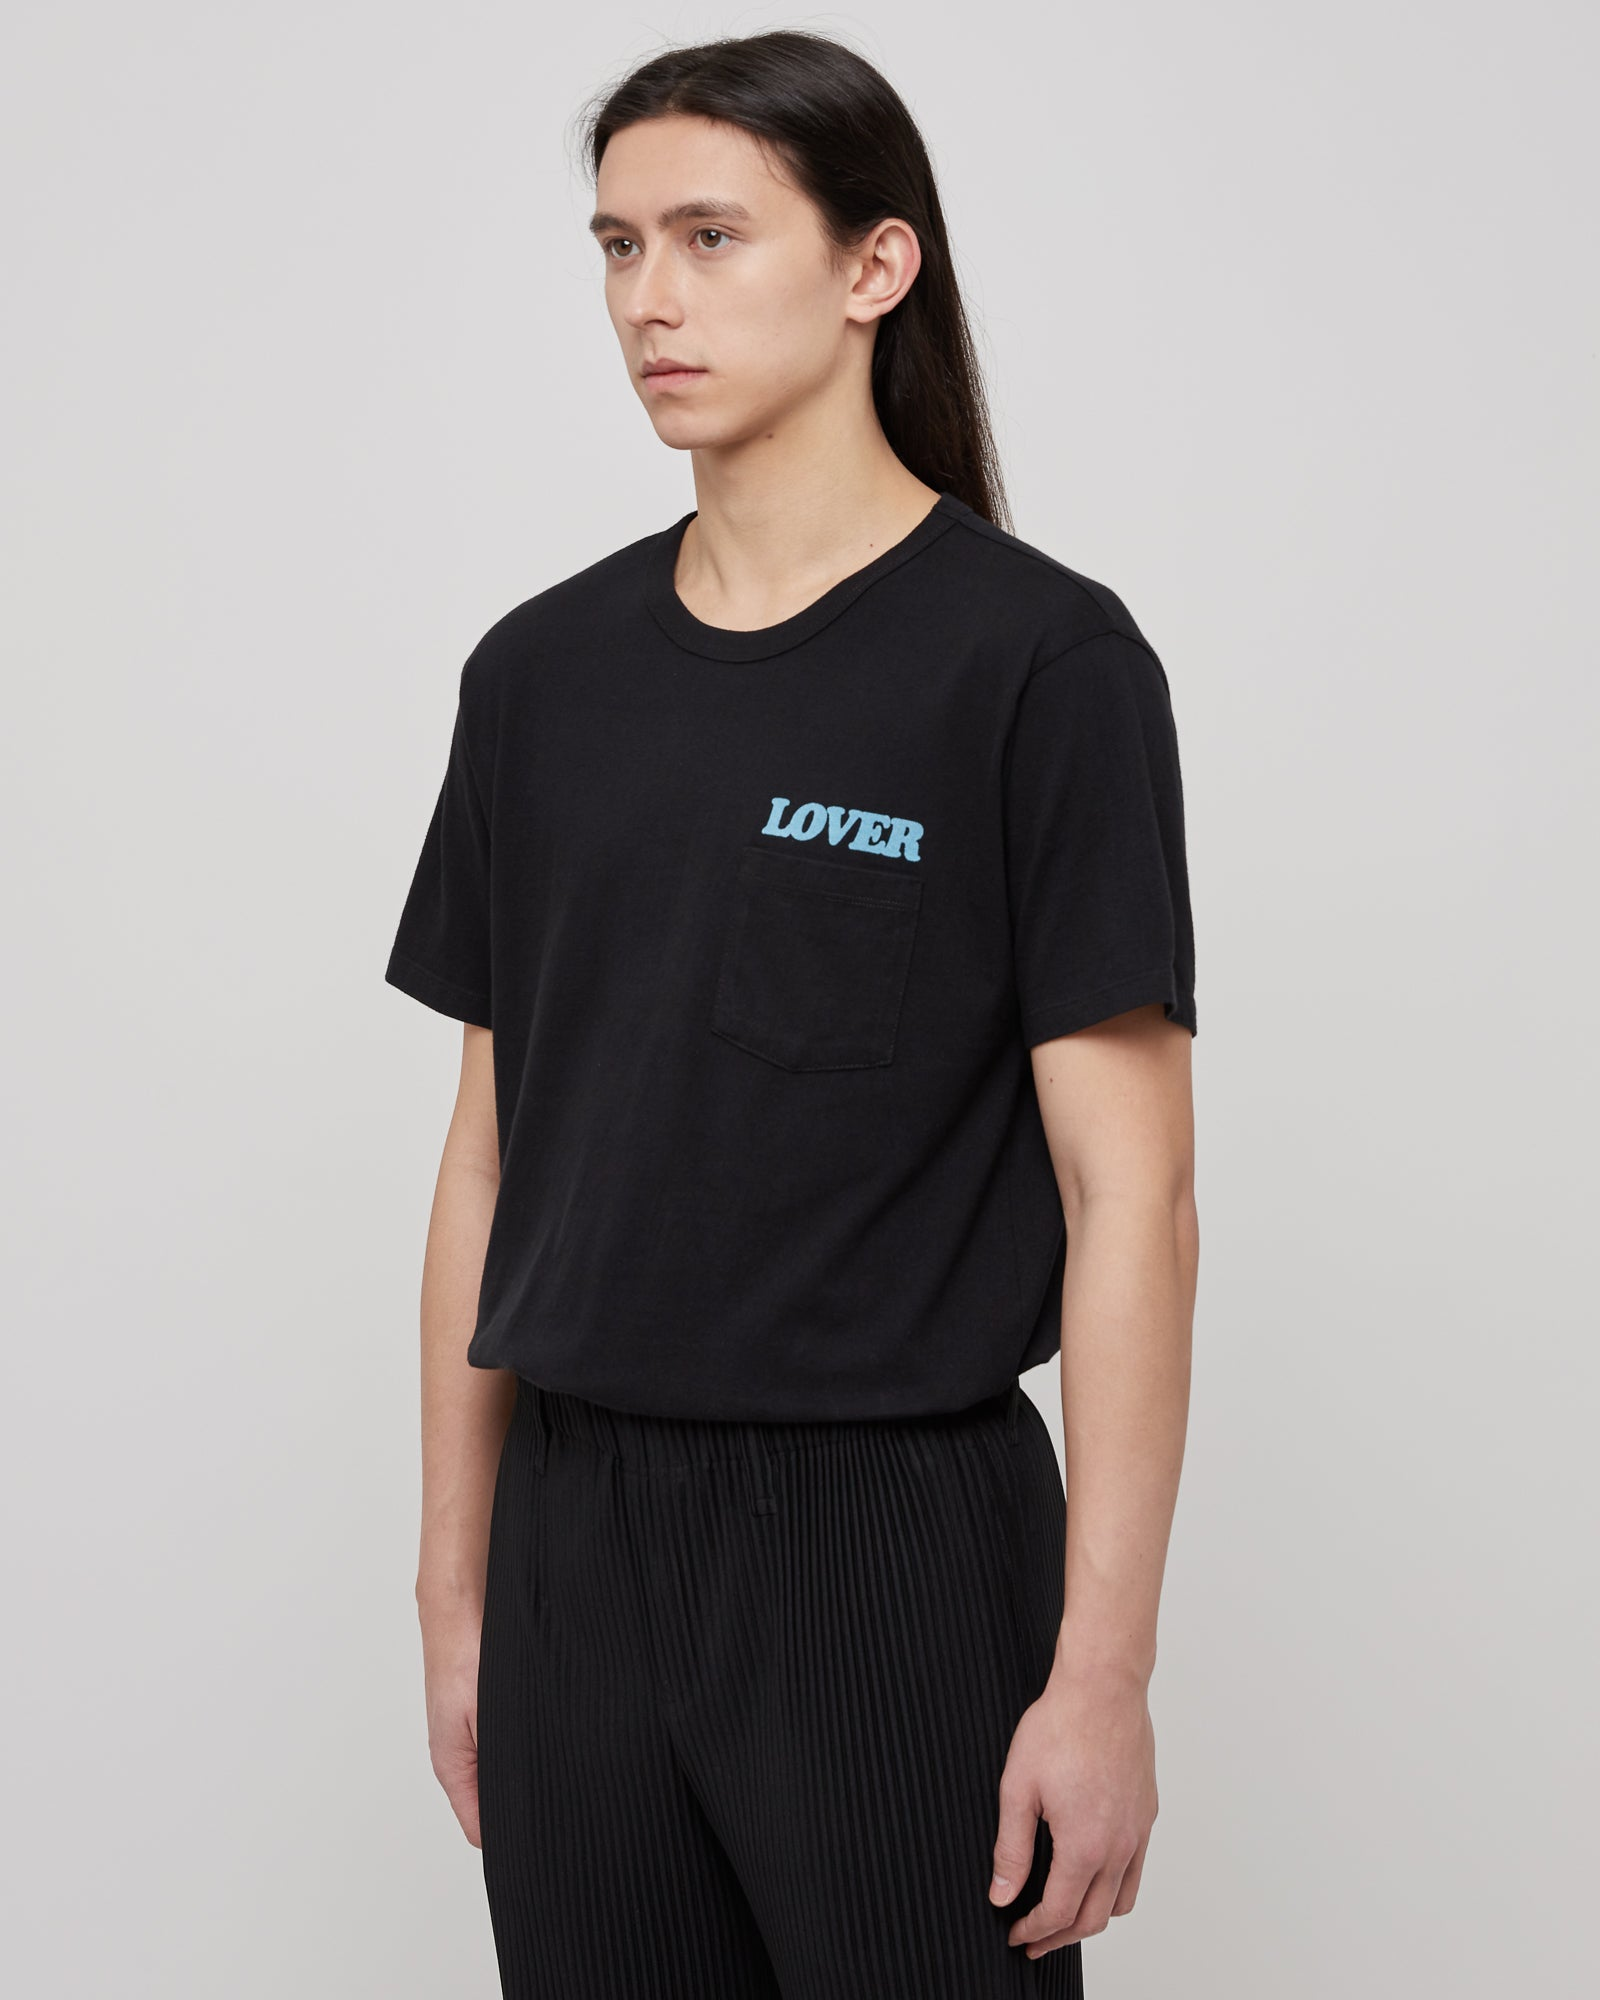 Lover Pocket T-Shirt in Baby Blue & Black